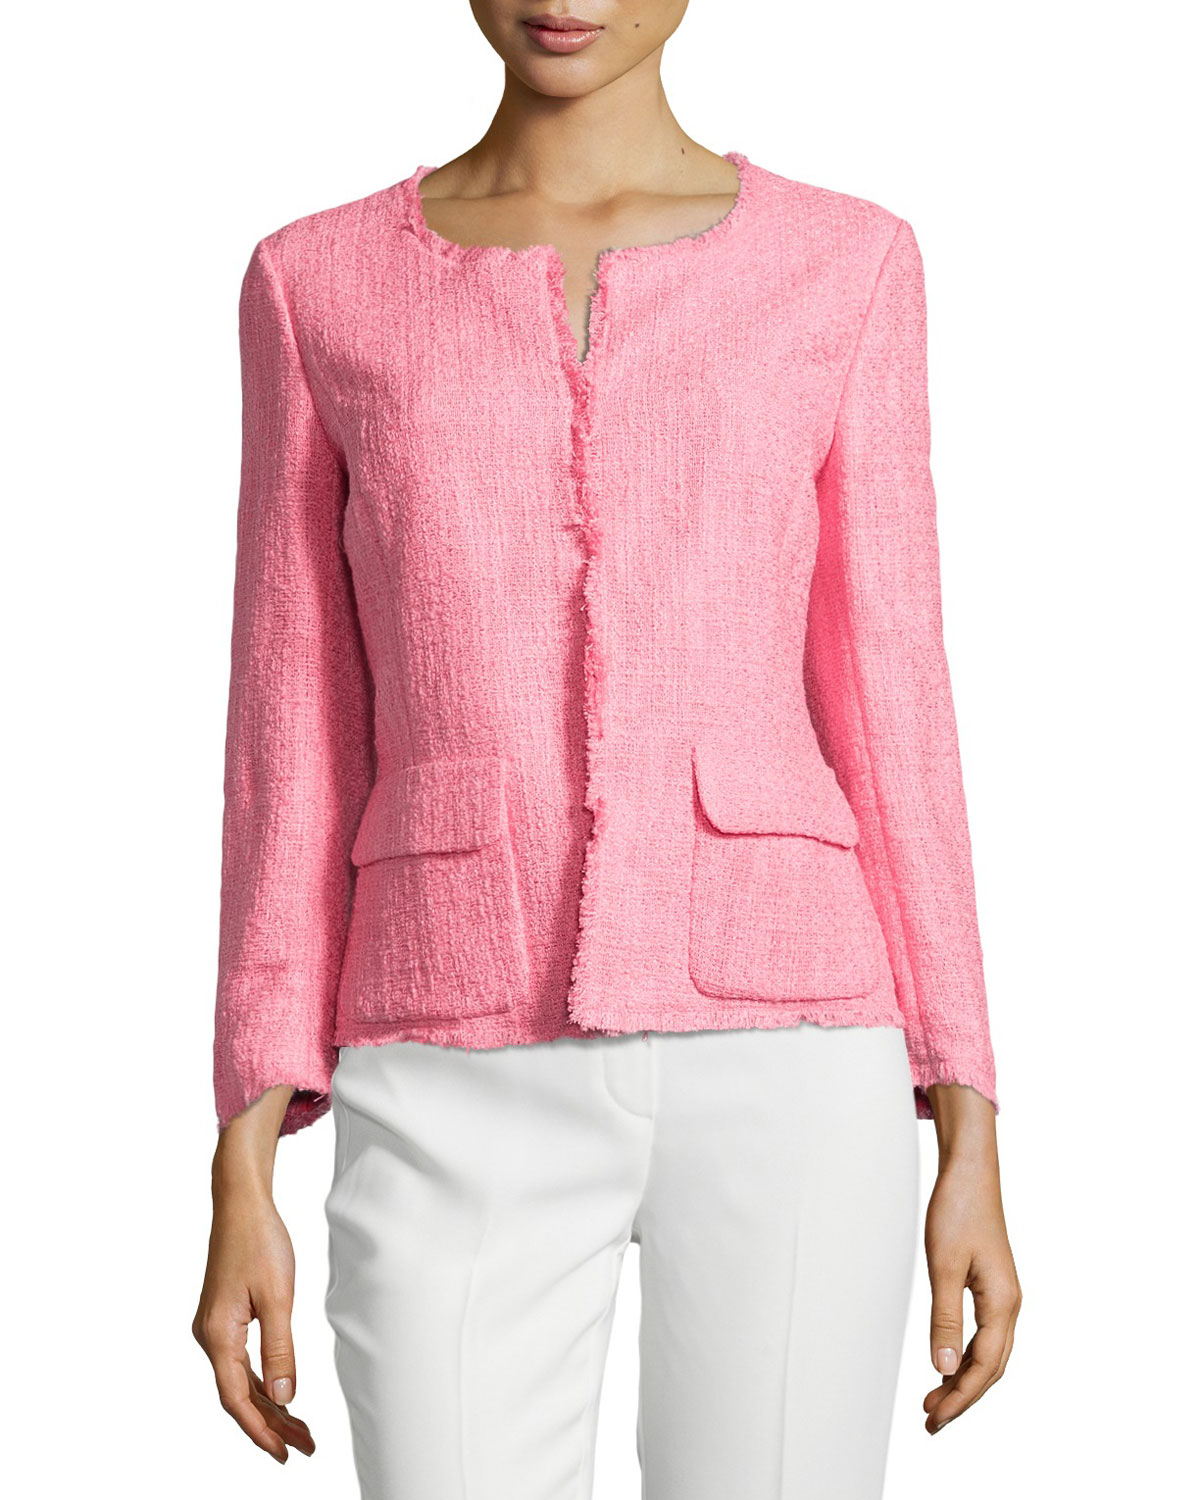 Lyst - Lafayette 148 new york Portia Fringe-trim Boucle Jacket in Pink